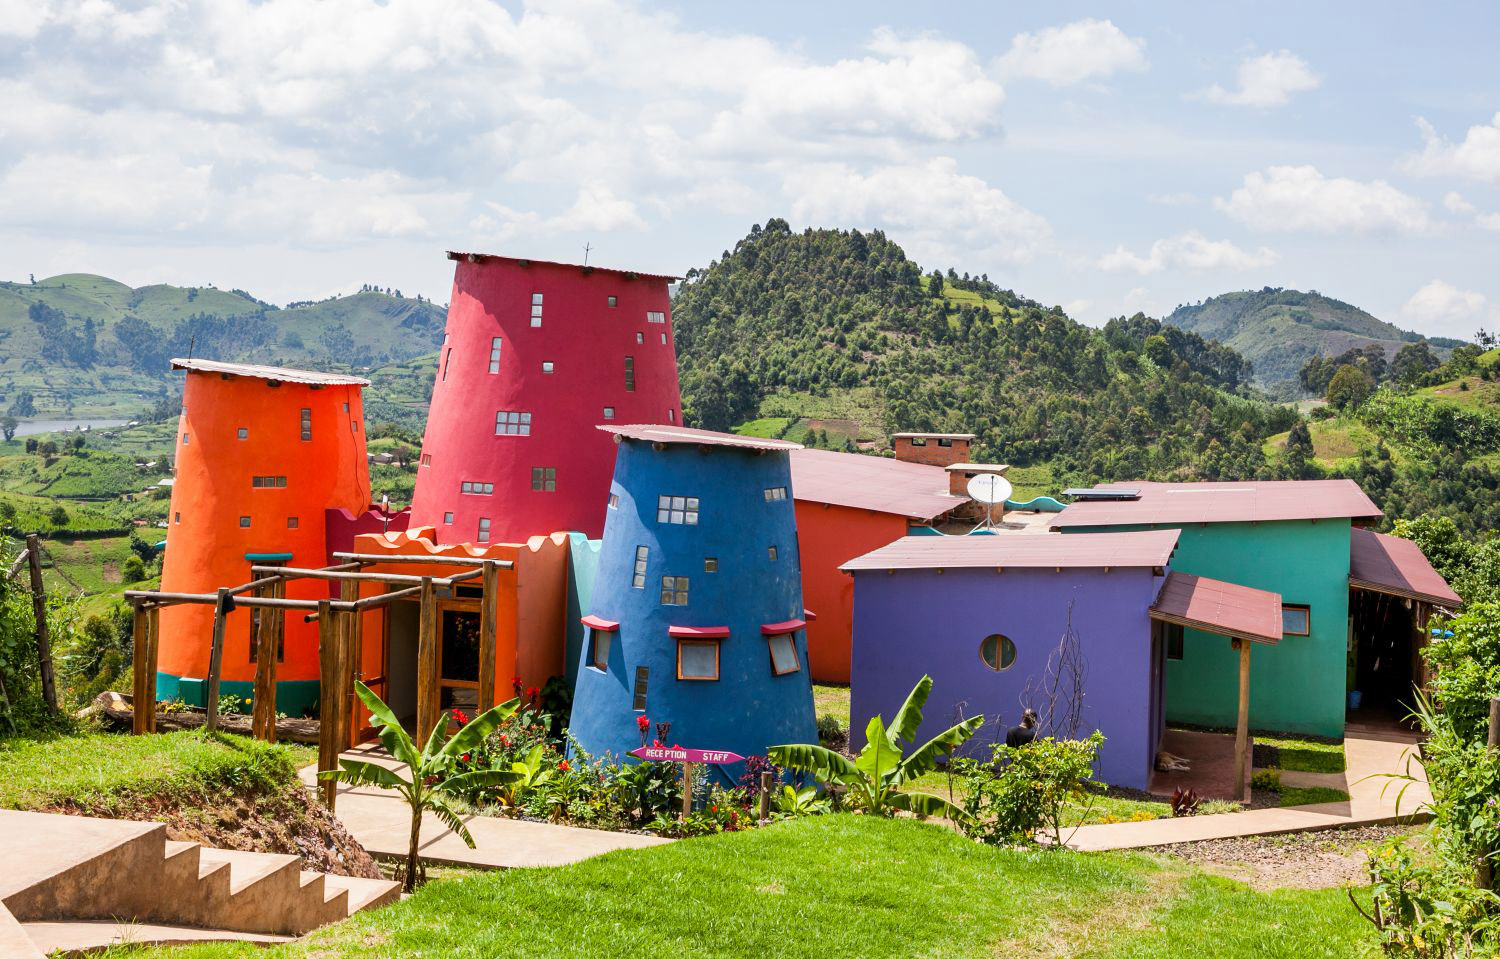 chameleon hill lodge - uganda-accommodations-destinations-journey-in-style-africa-01